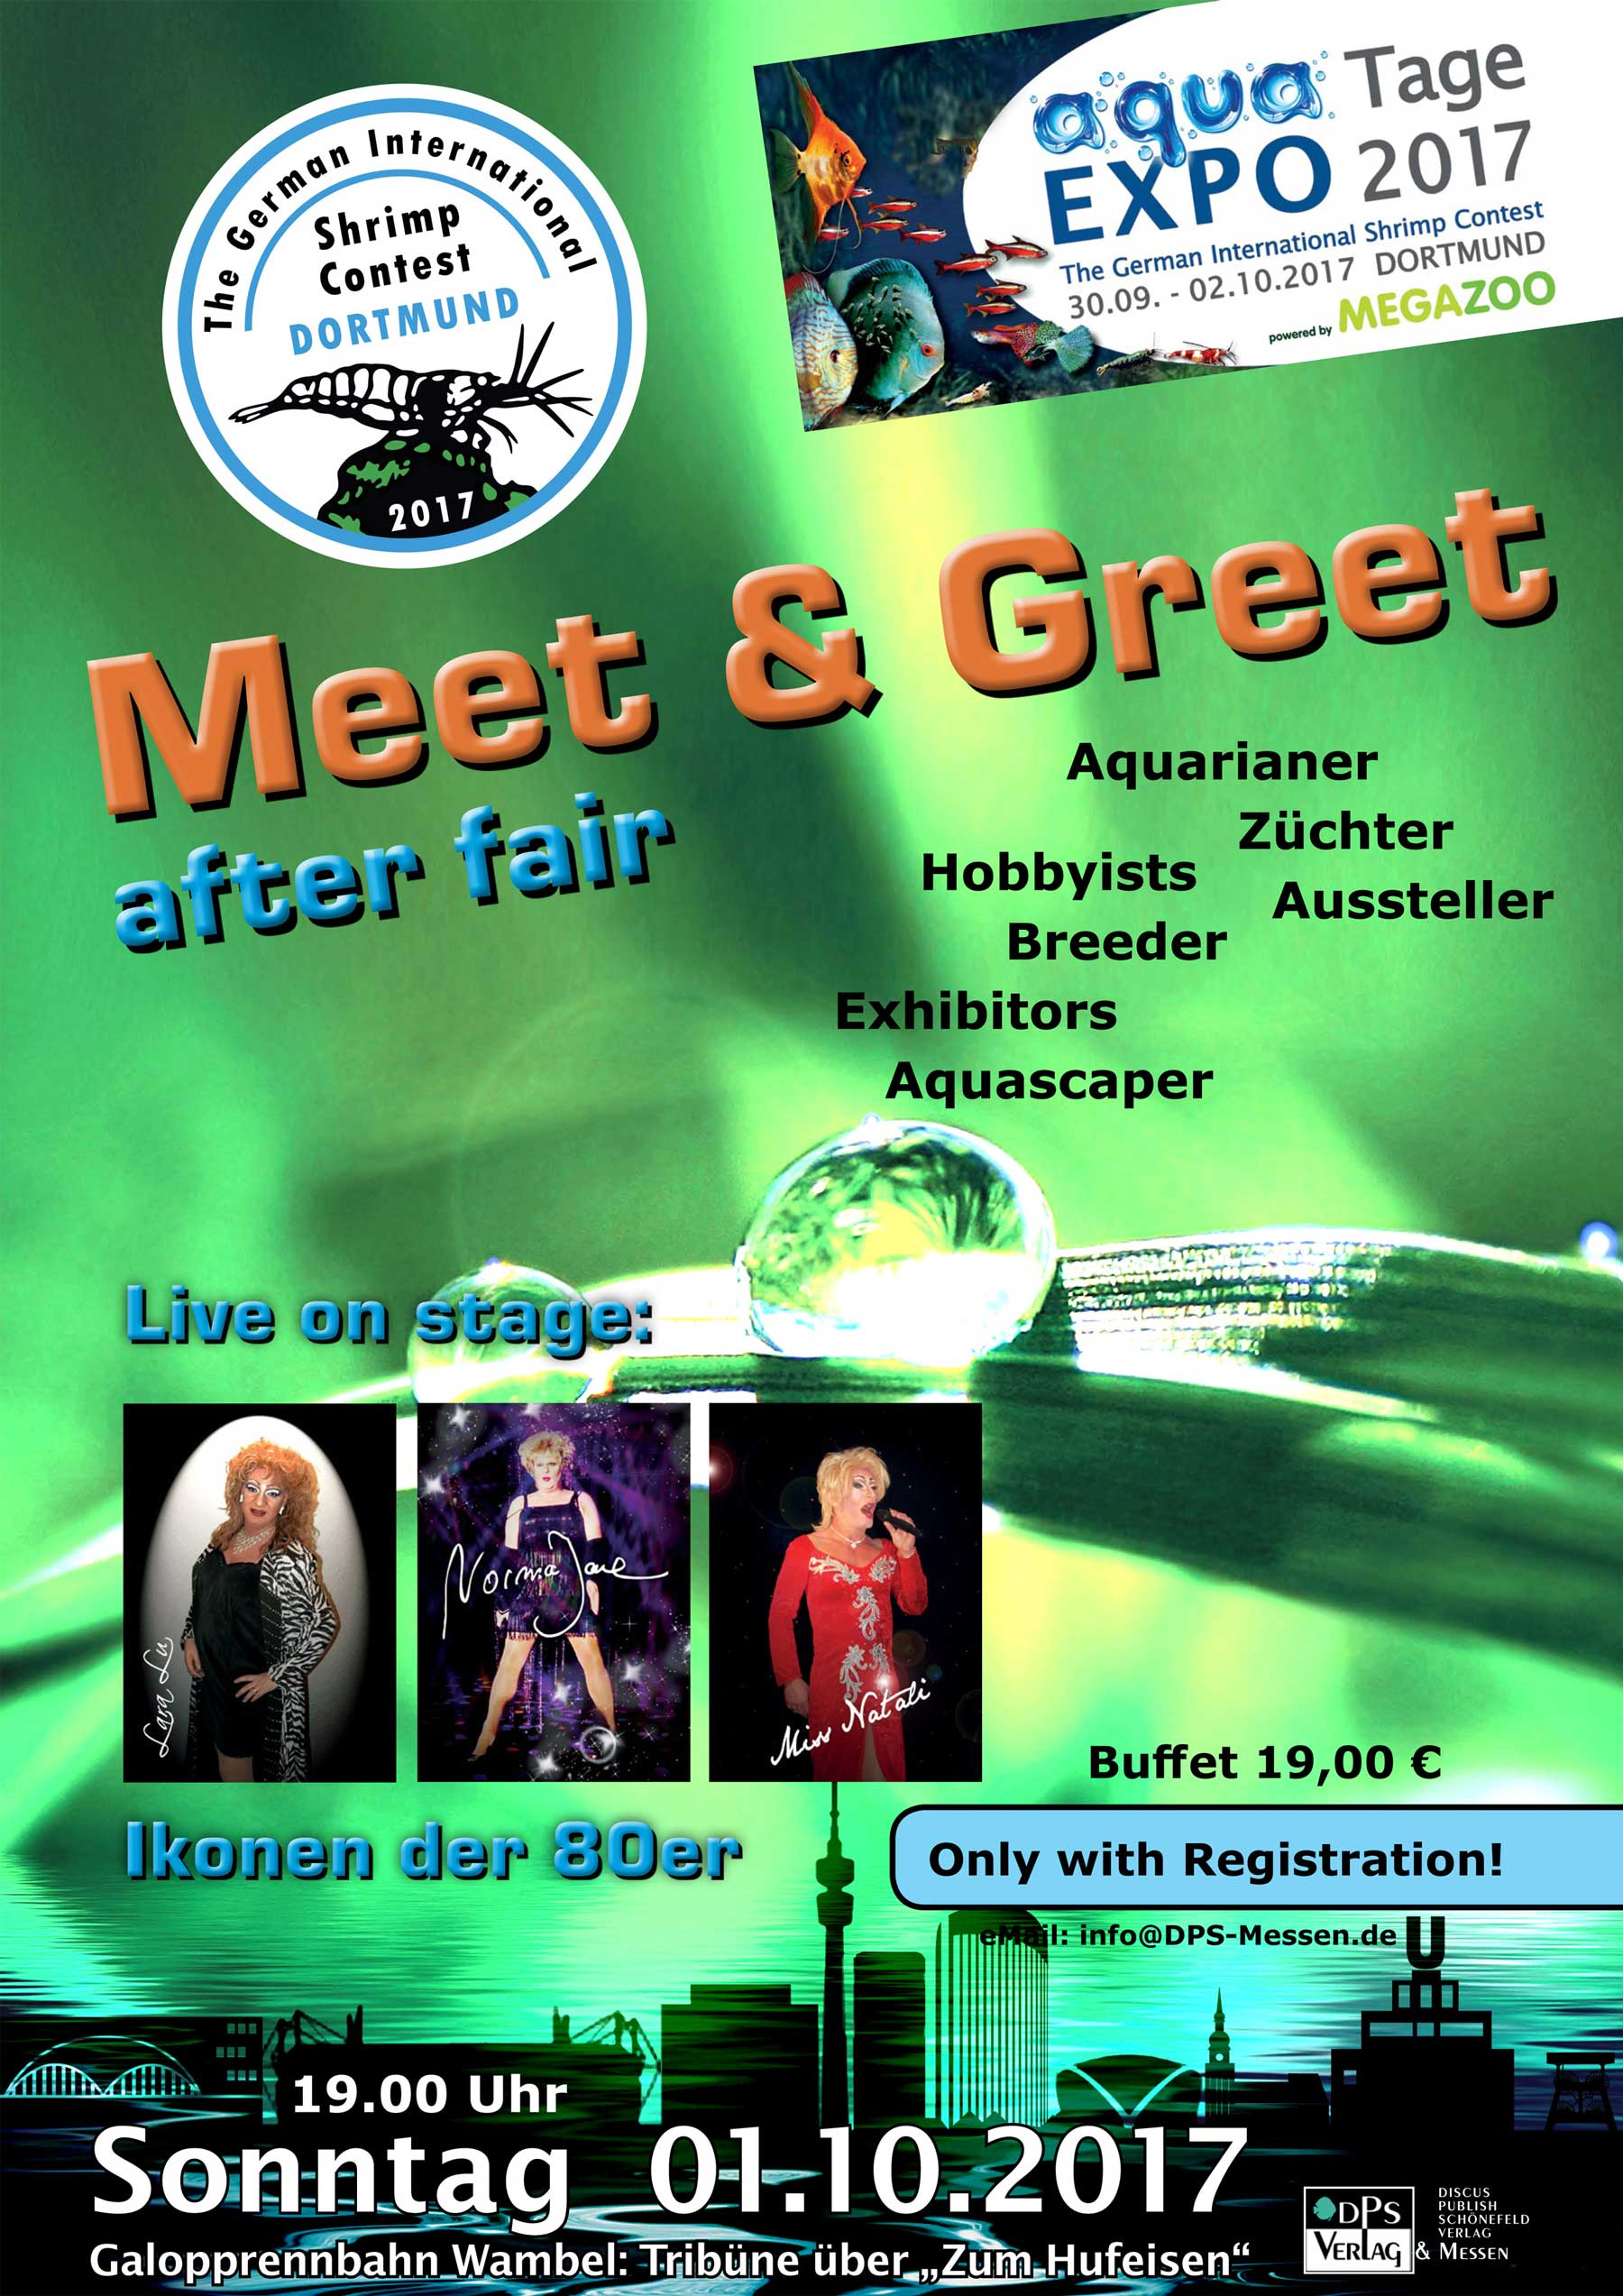 TGISC - aqua EXPO Tage - Meet and Greet - Dortmund